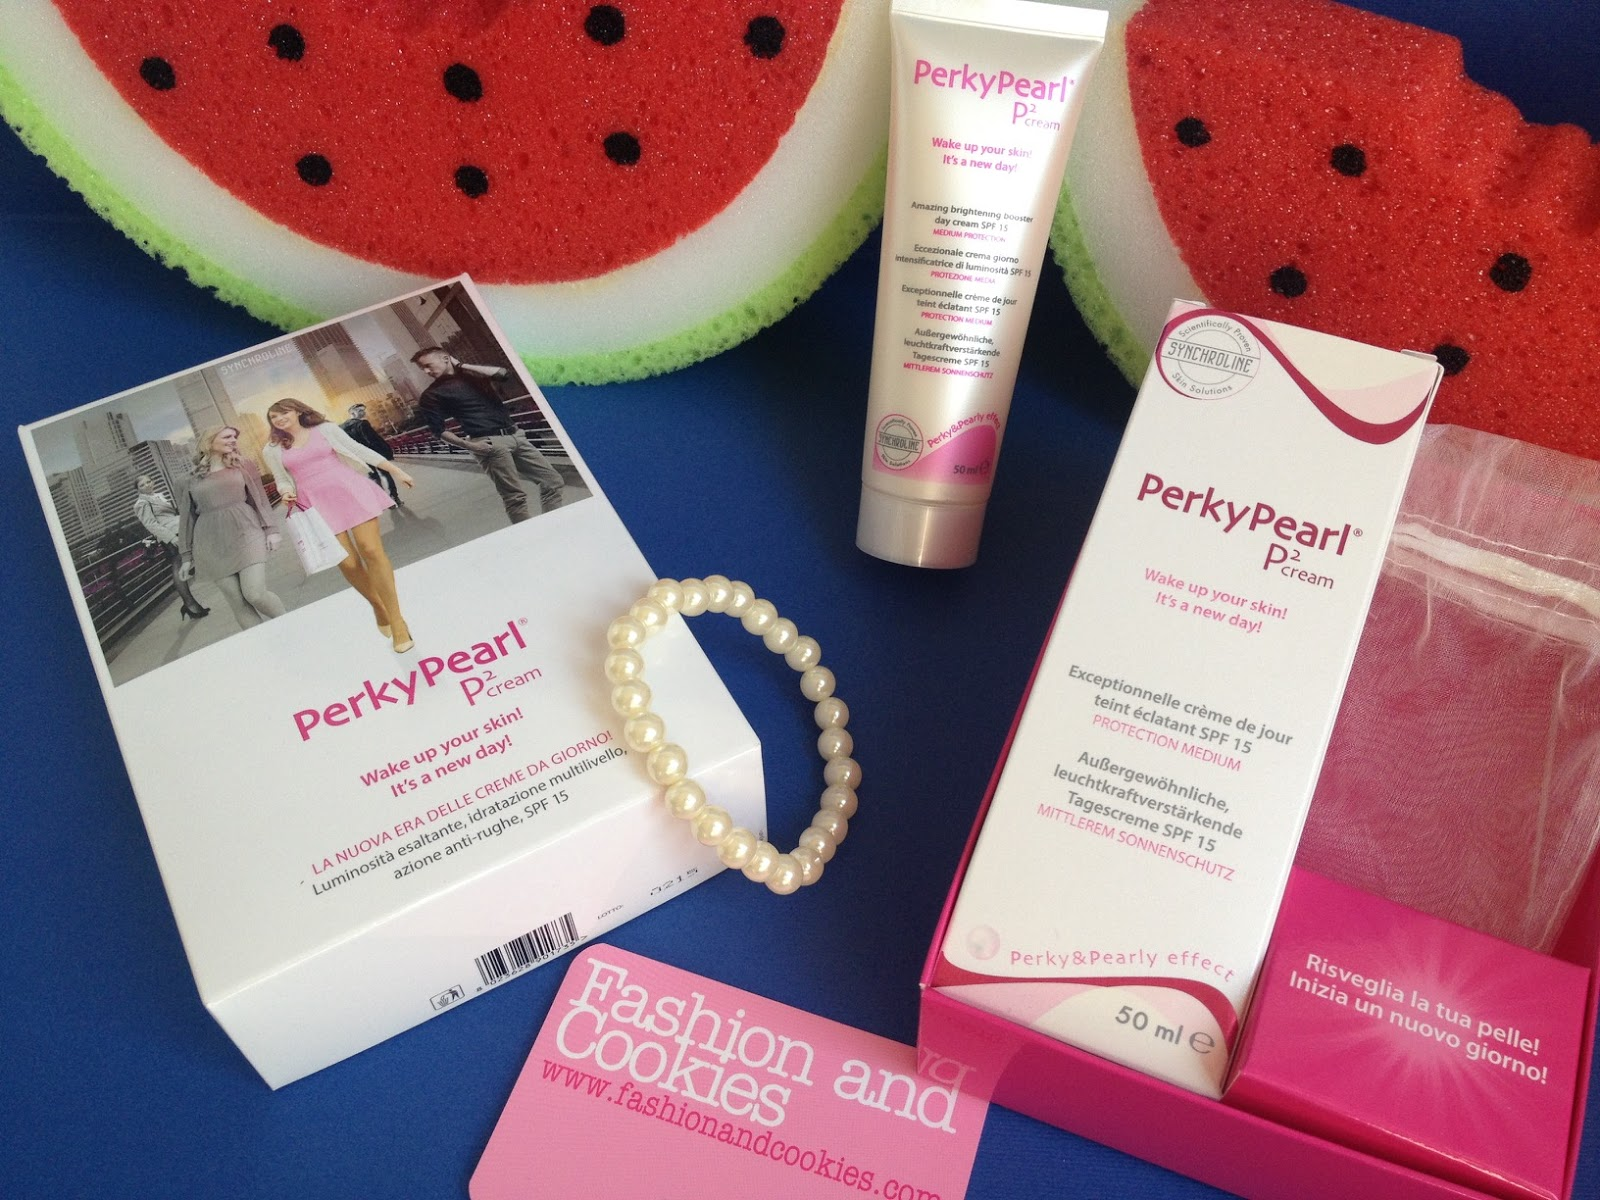 Perky Pearl day cream review on Fashion and Cookies fashion and beauty blog